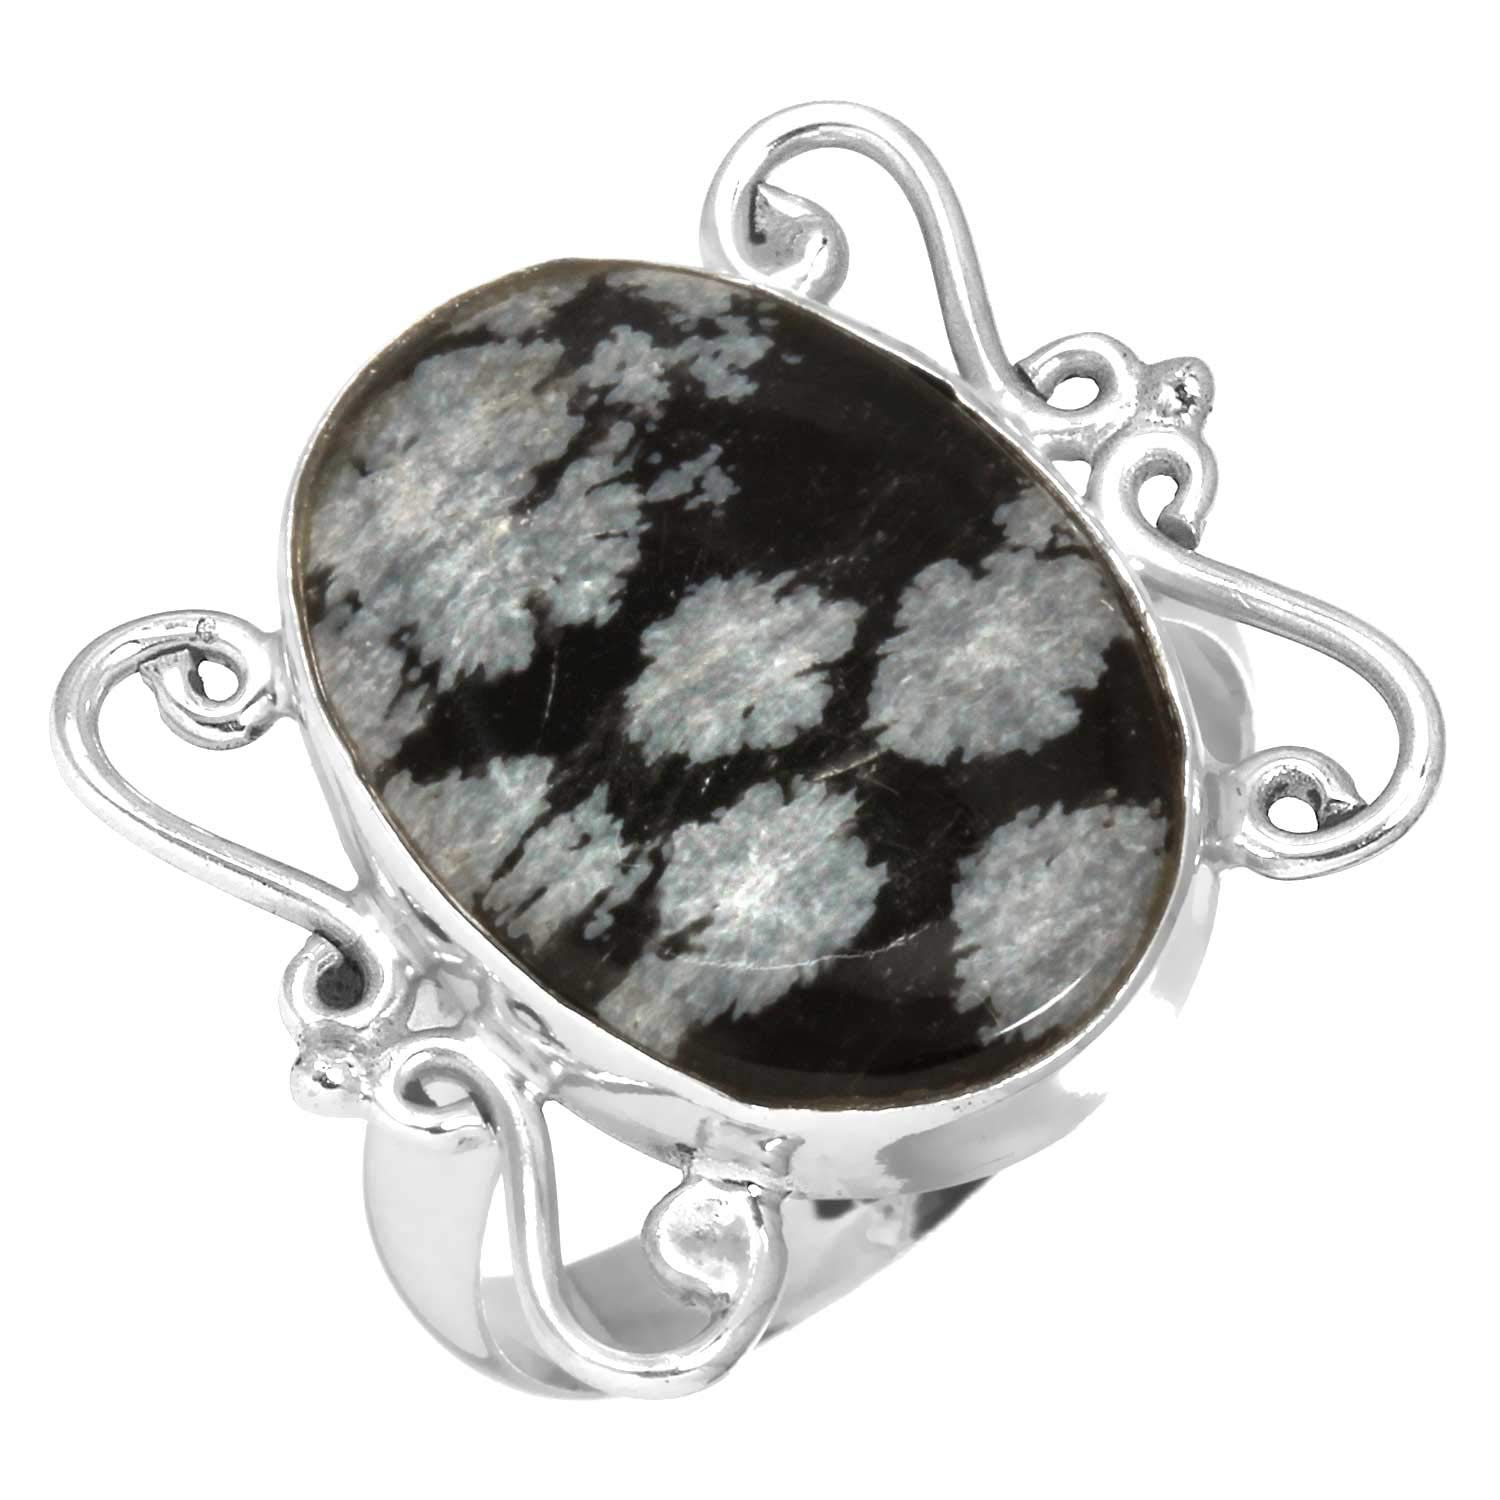 Solid 925 Sterling Silver Ring Natural Snowflake Obsidian Gemstone Designer Jewelry Size 9.5